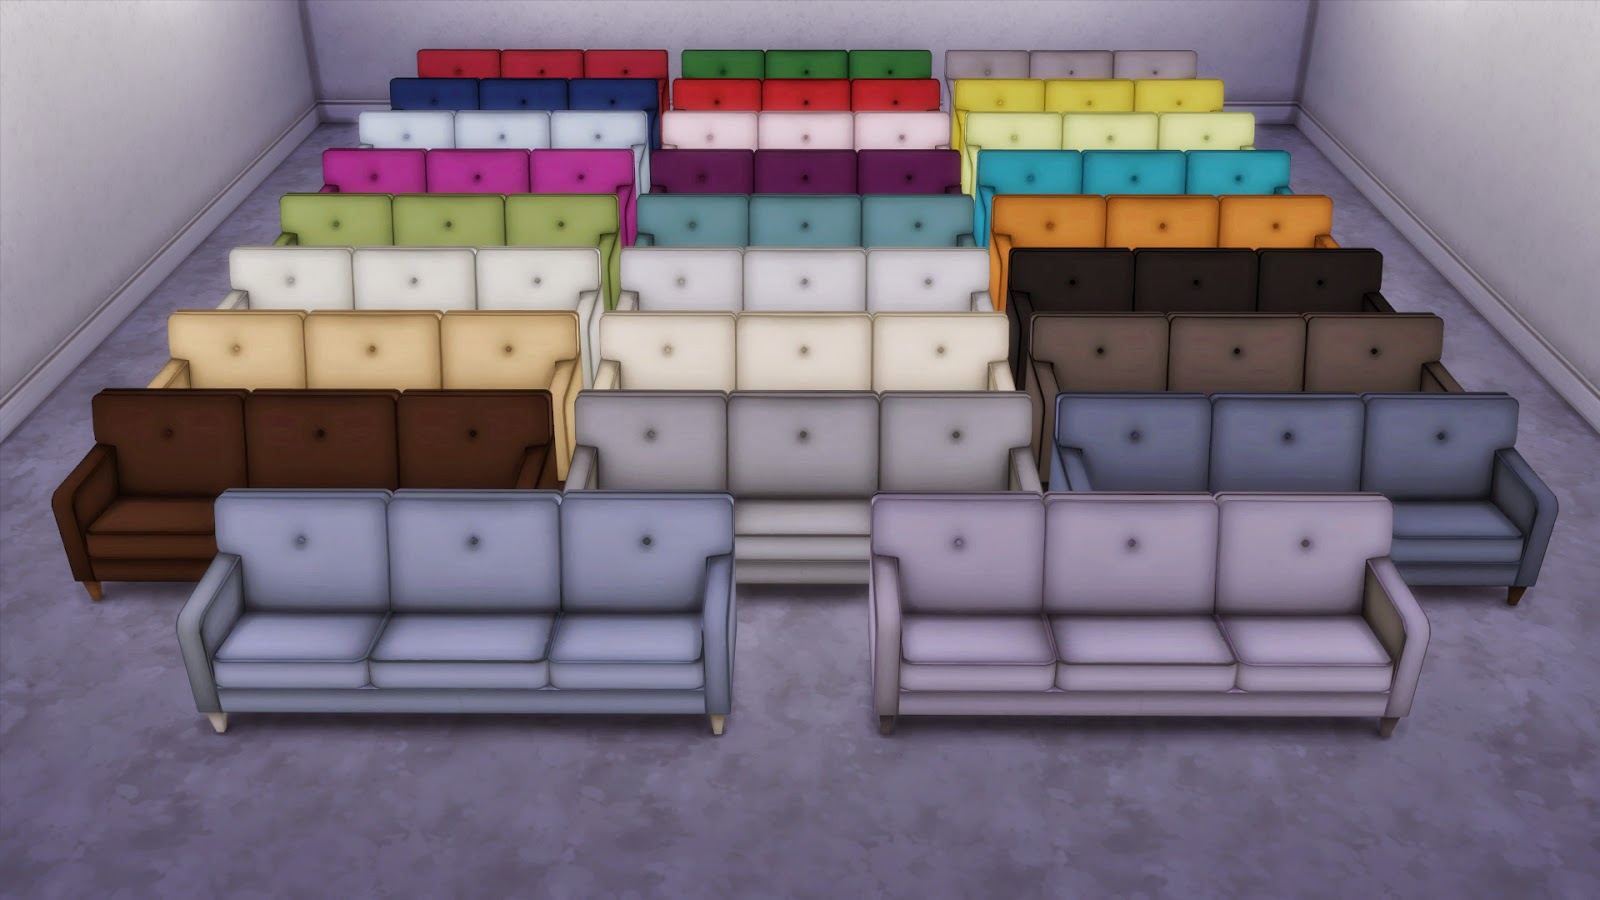 my sims 4 blog sofa le sims 3 conversion by edwardianed. Black Bedroom Furniture Sets. Home Design Ideas